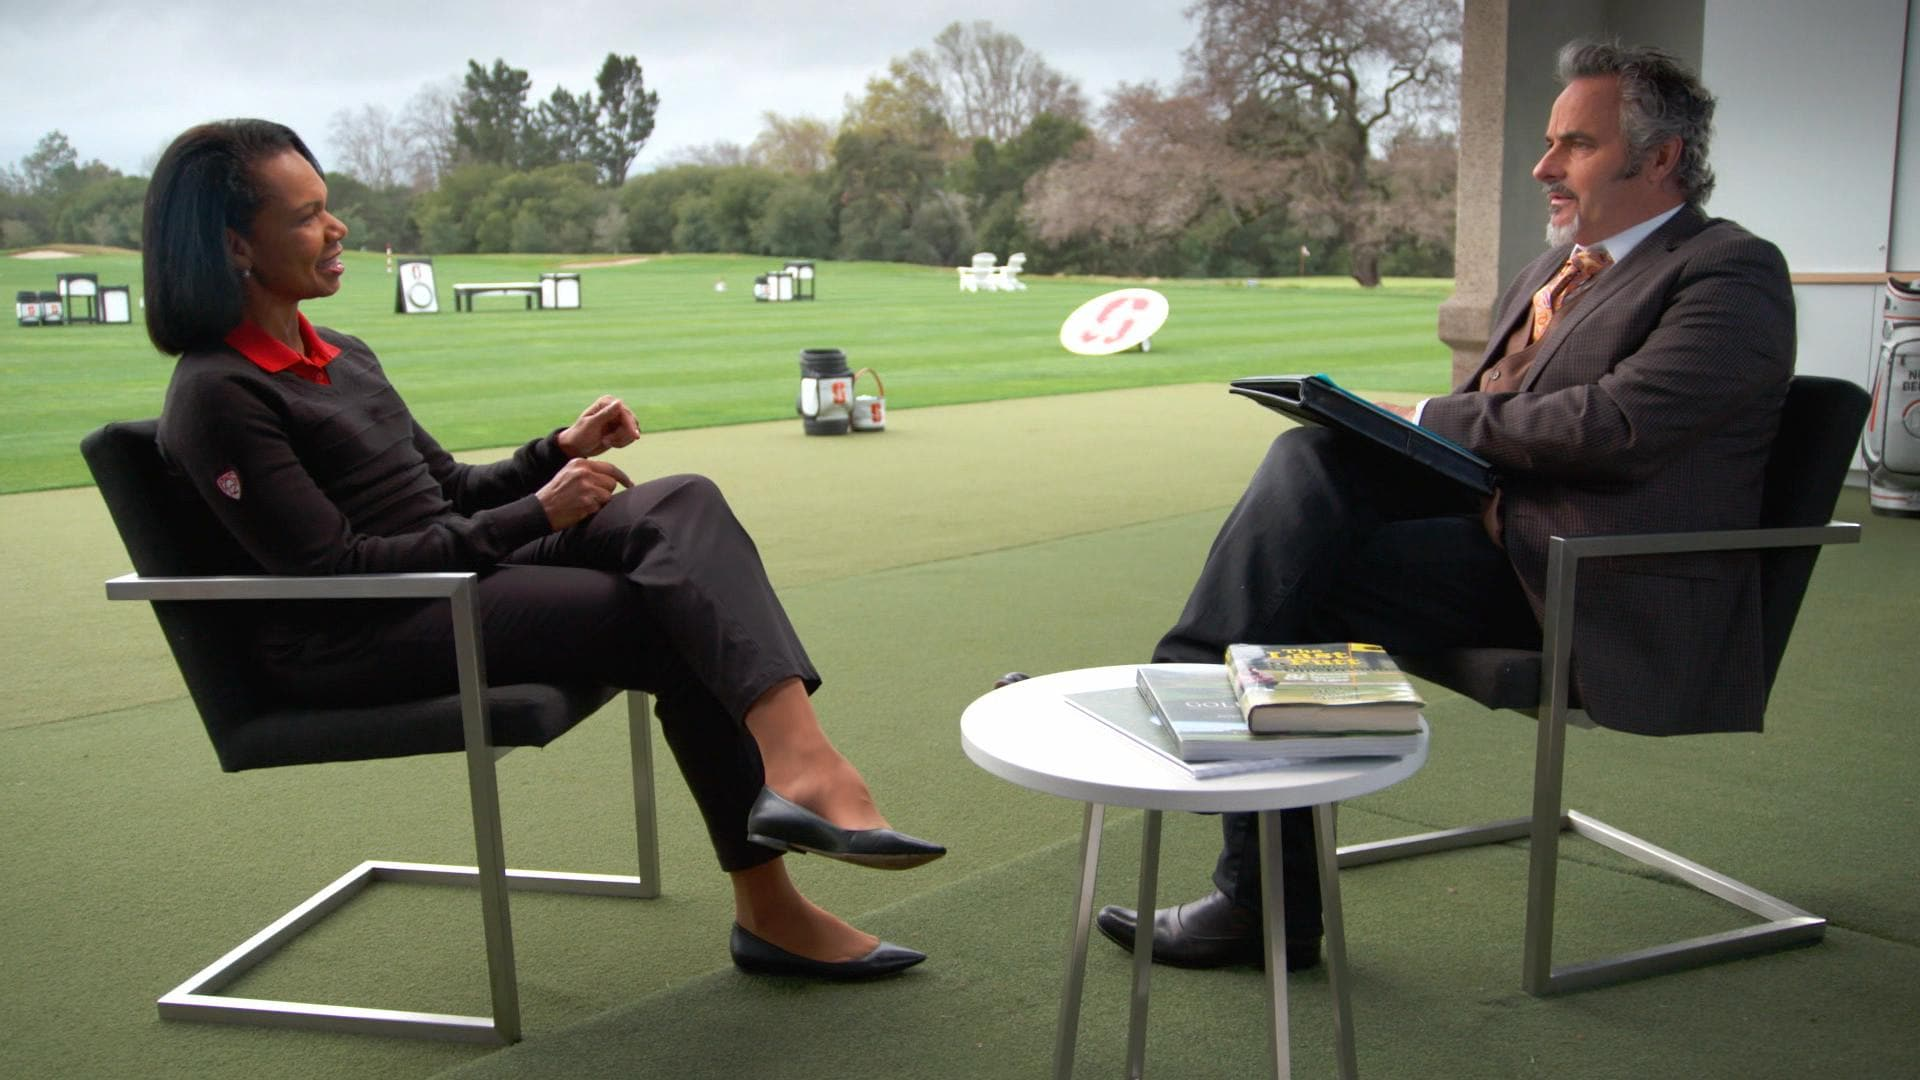 condoleezza rice tells feherty how she discovered golf